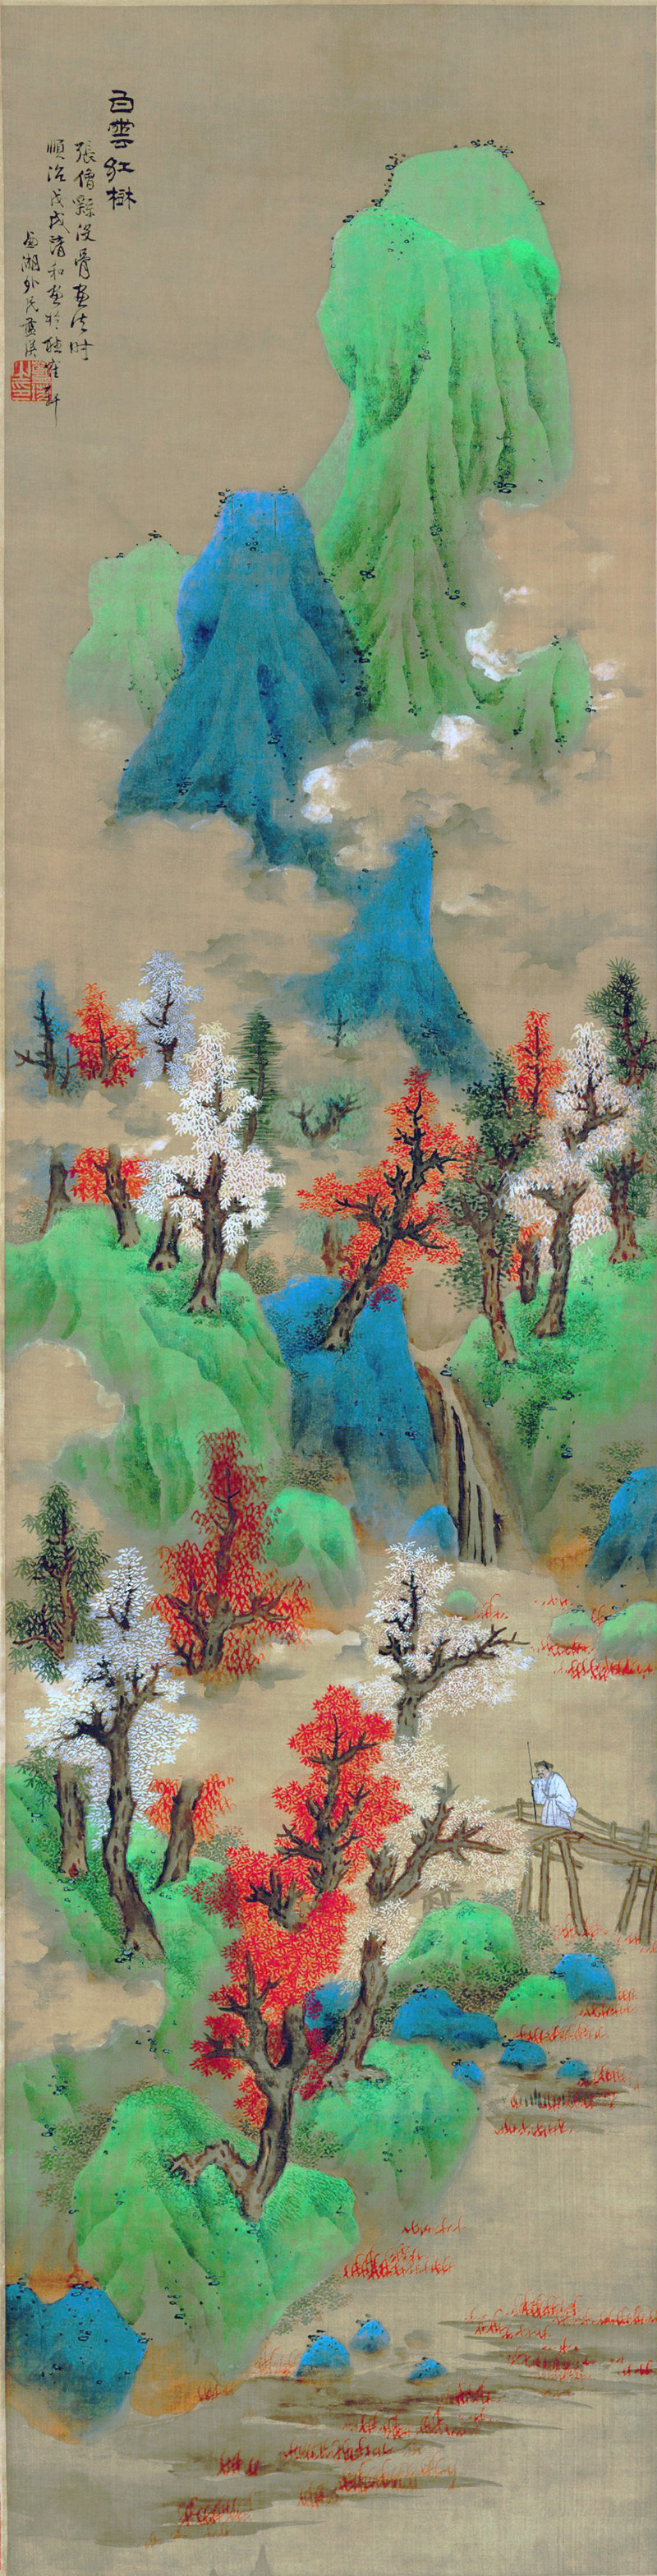 lan-ying_white-clouds-and-red-trees